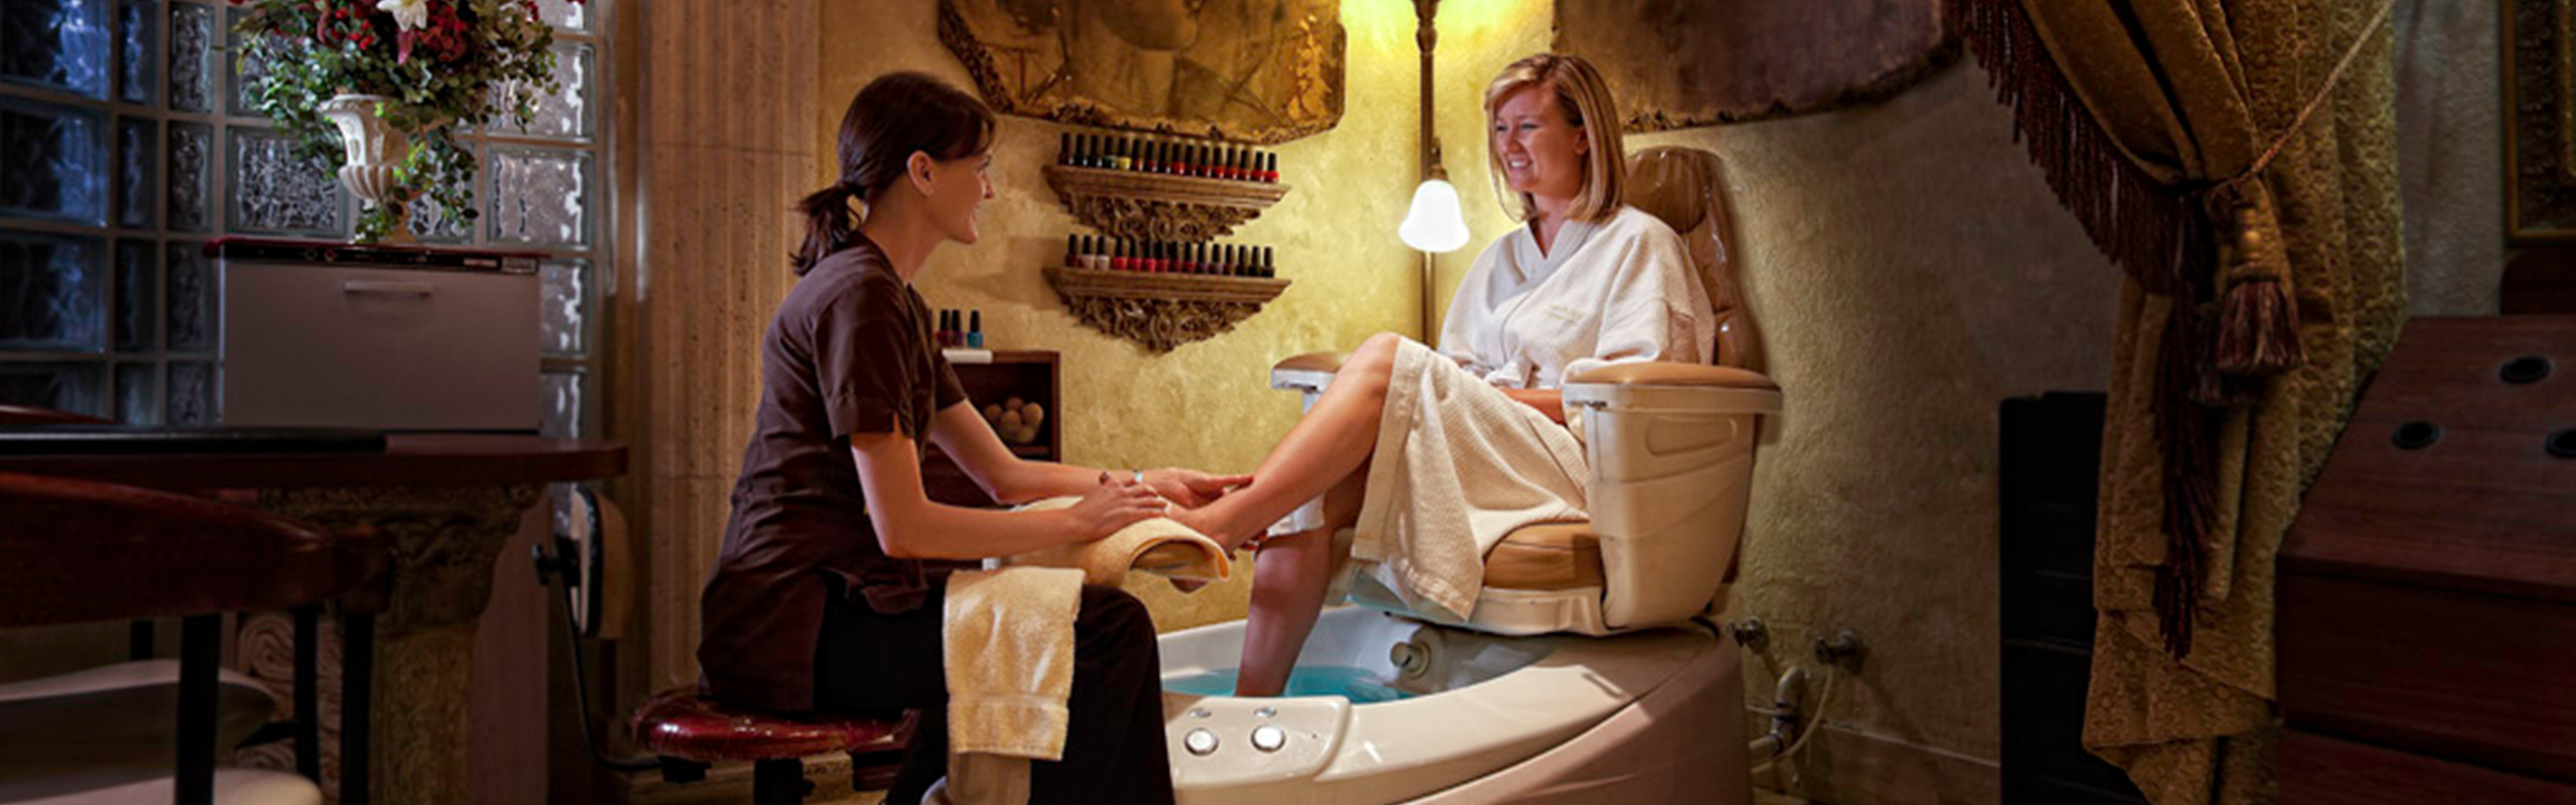 Serenity Spa at Westgate Park City Resort